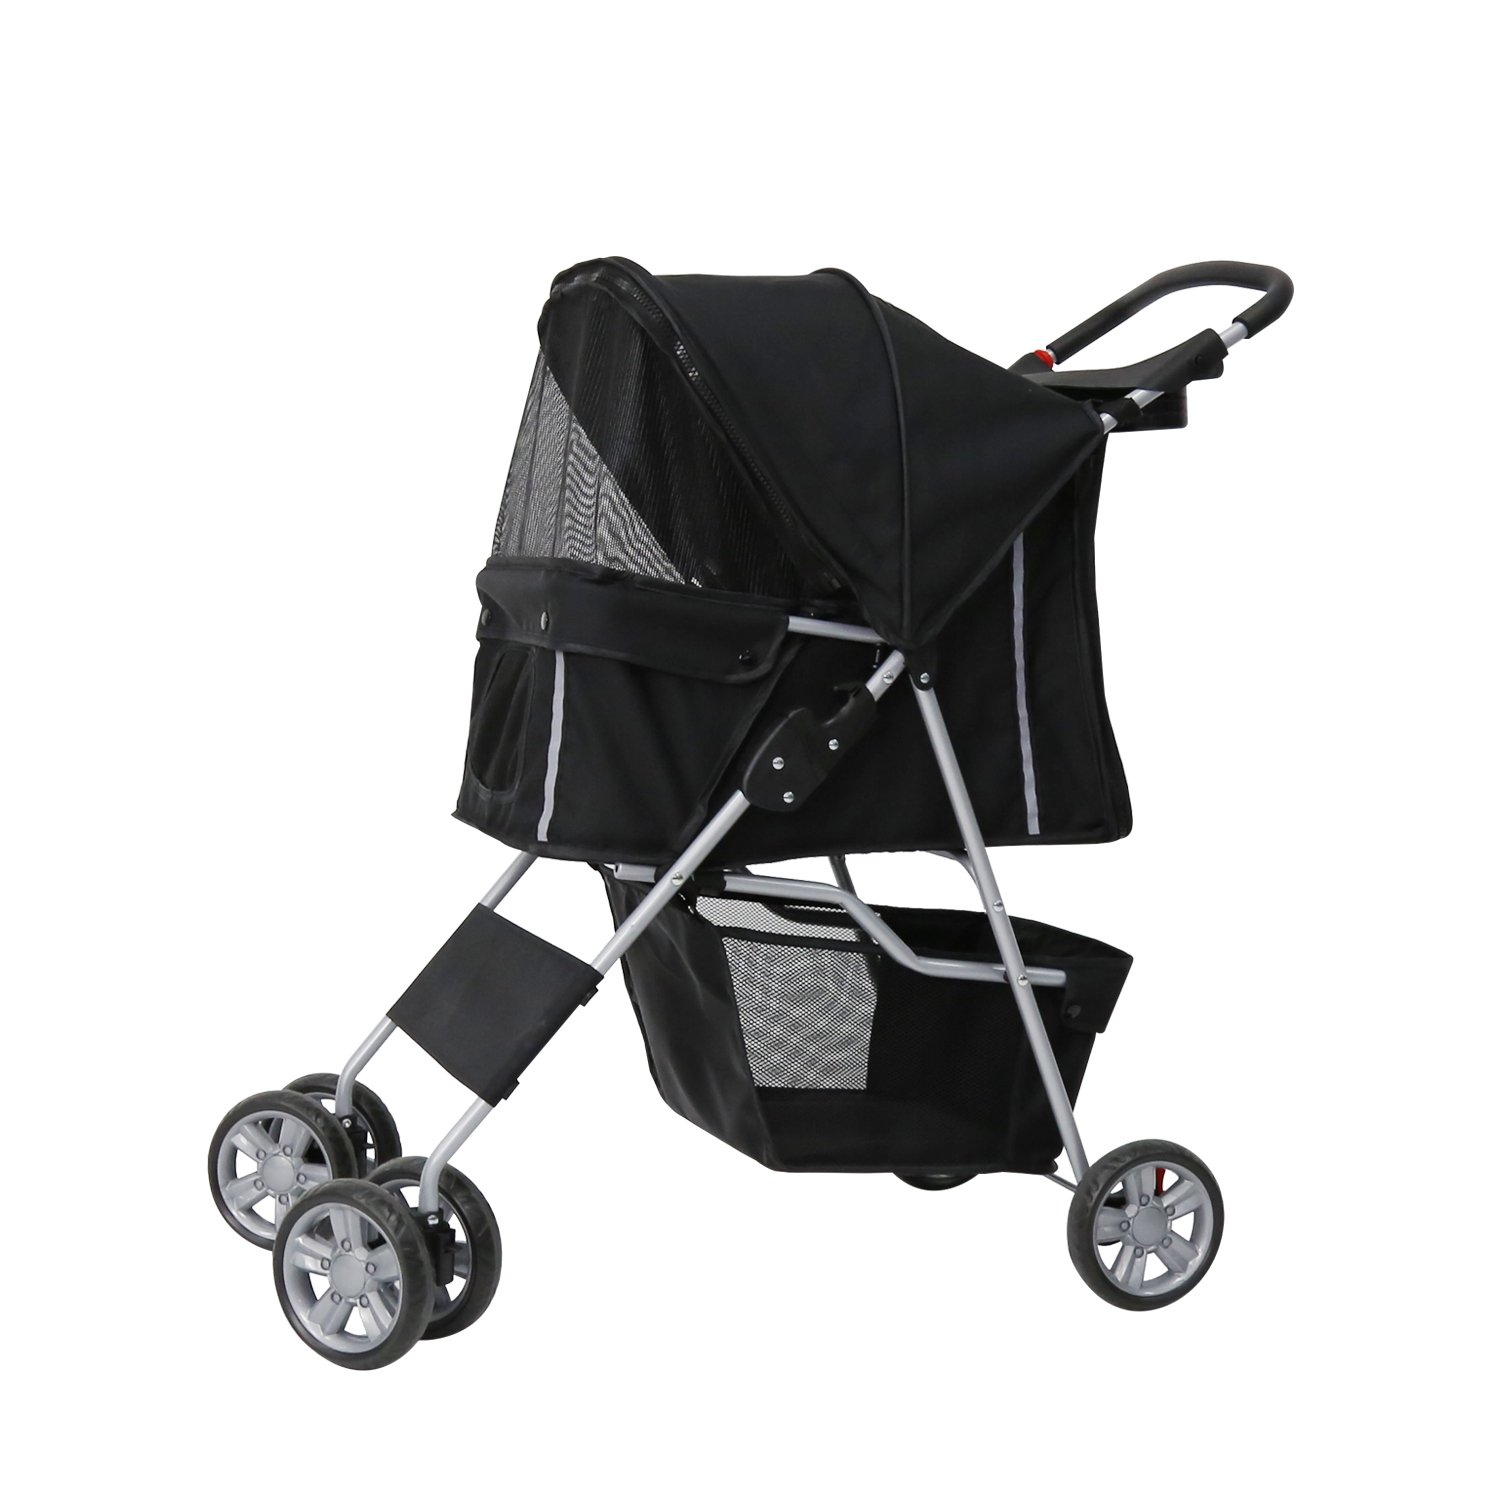 Peach Tree Four Wheel Pet Stroller, for Cat, Dog and More, Foldable Carrier Strolling Cart (black)